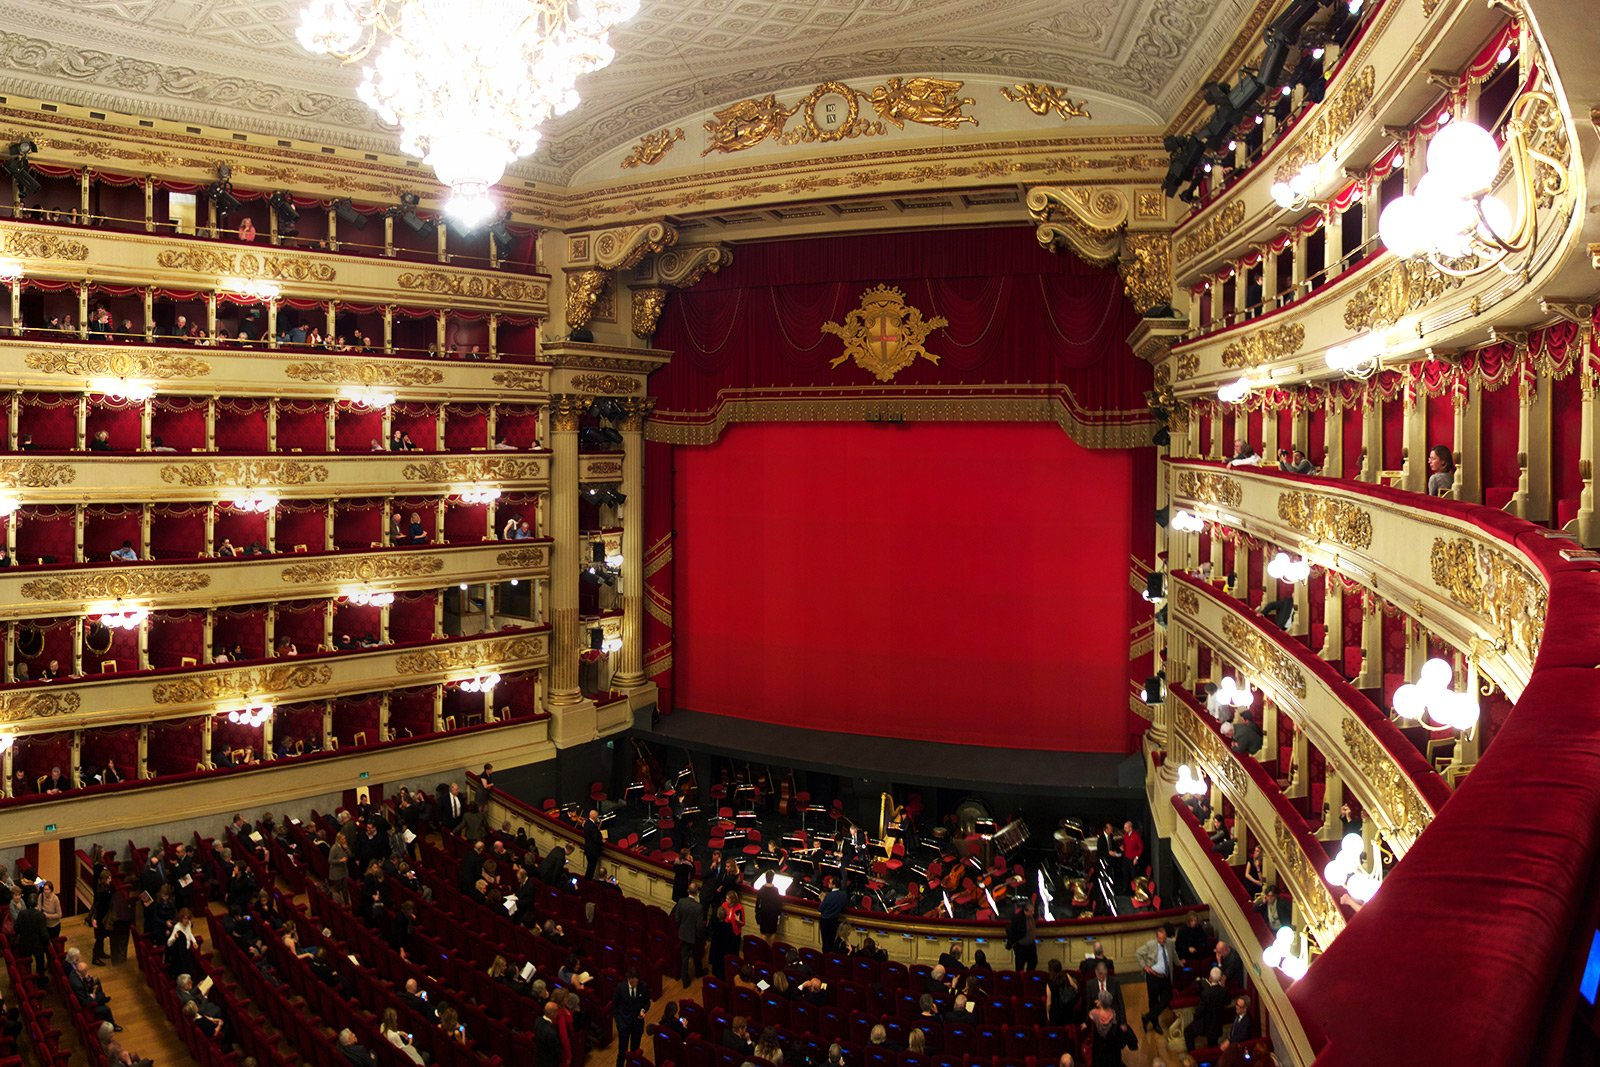 How to listen to opera at La Scala in Milan